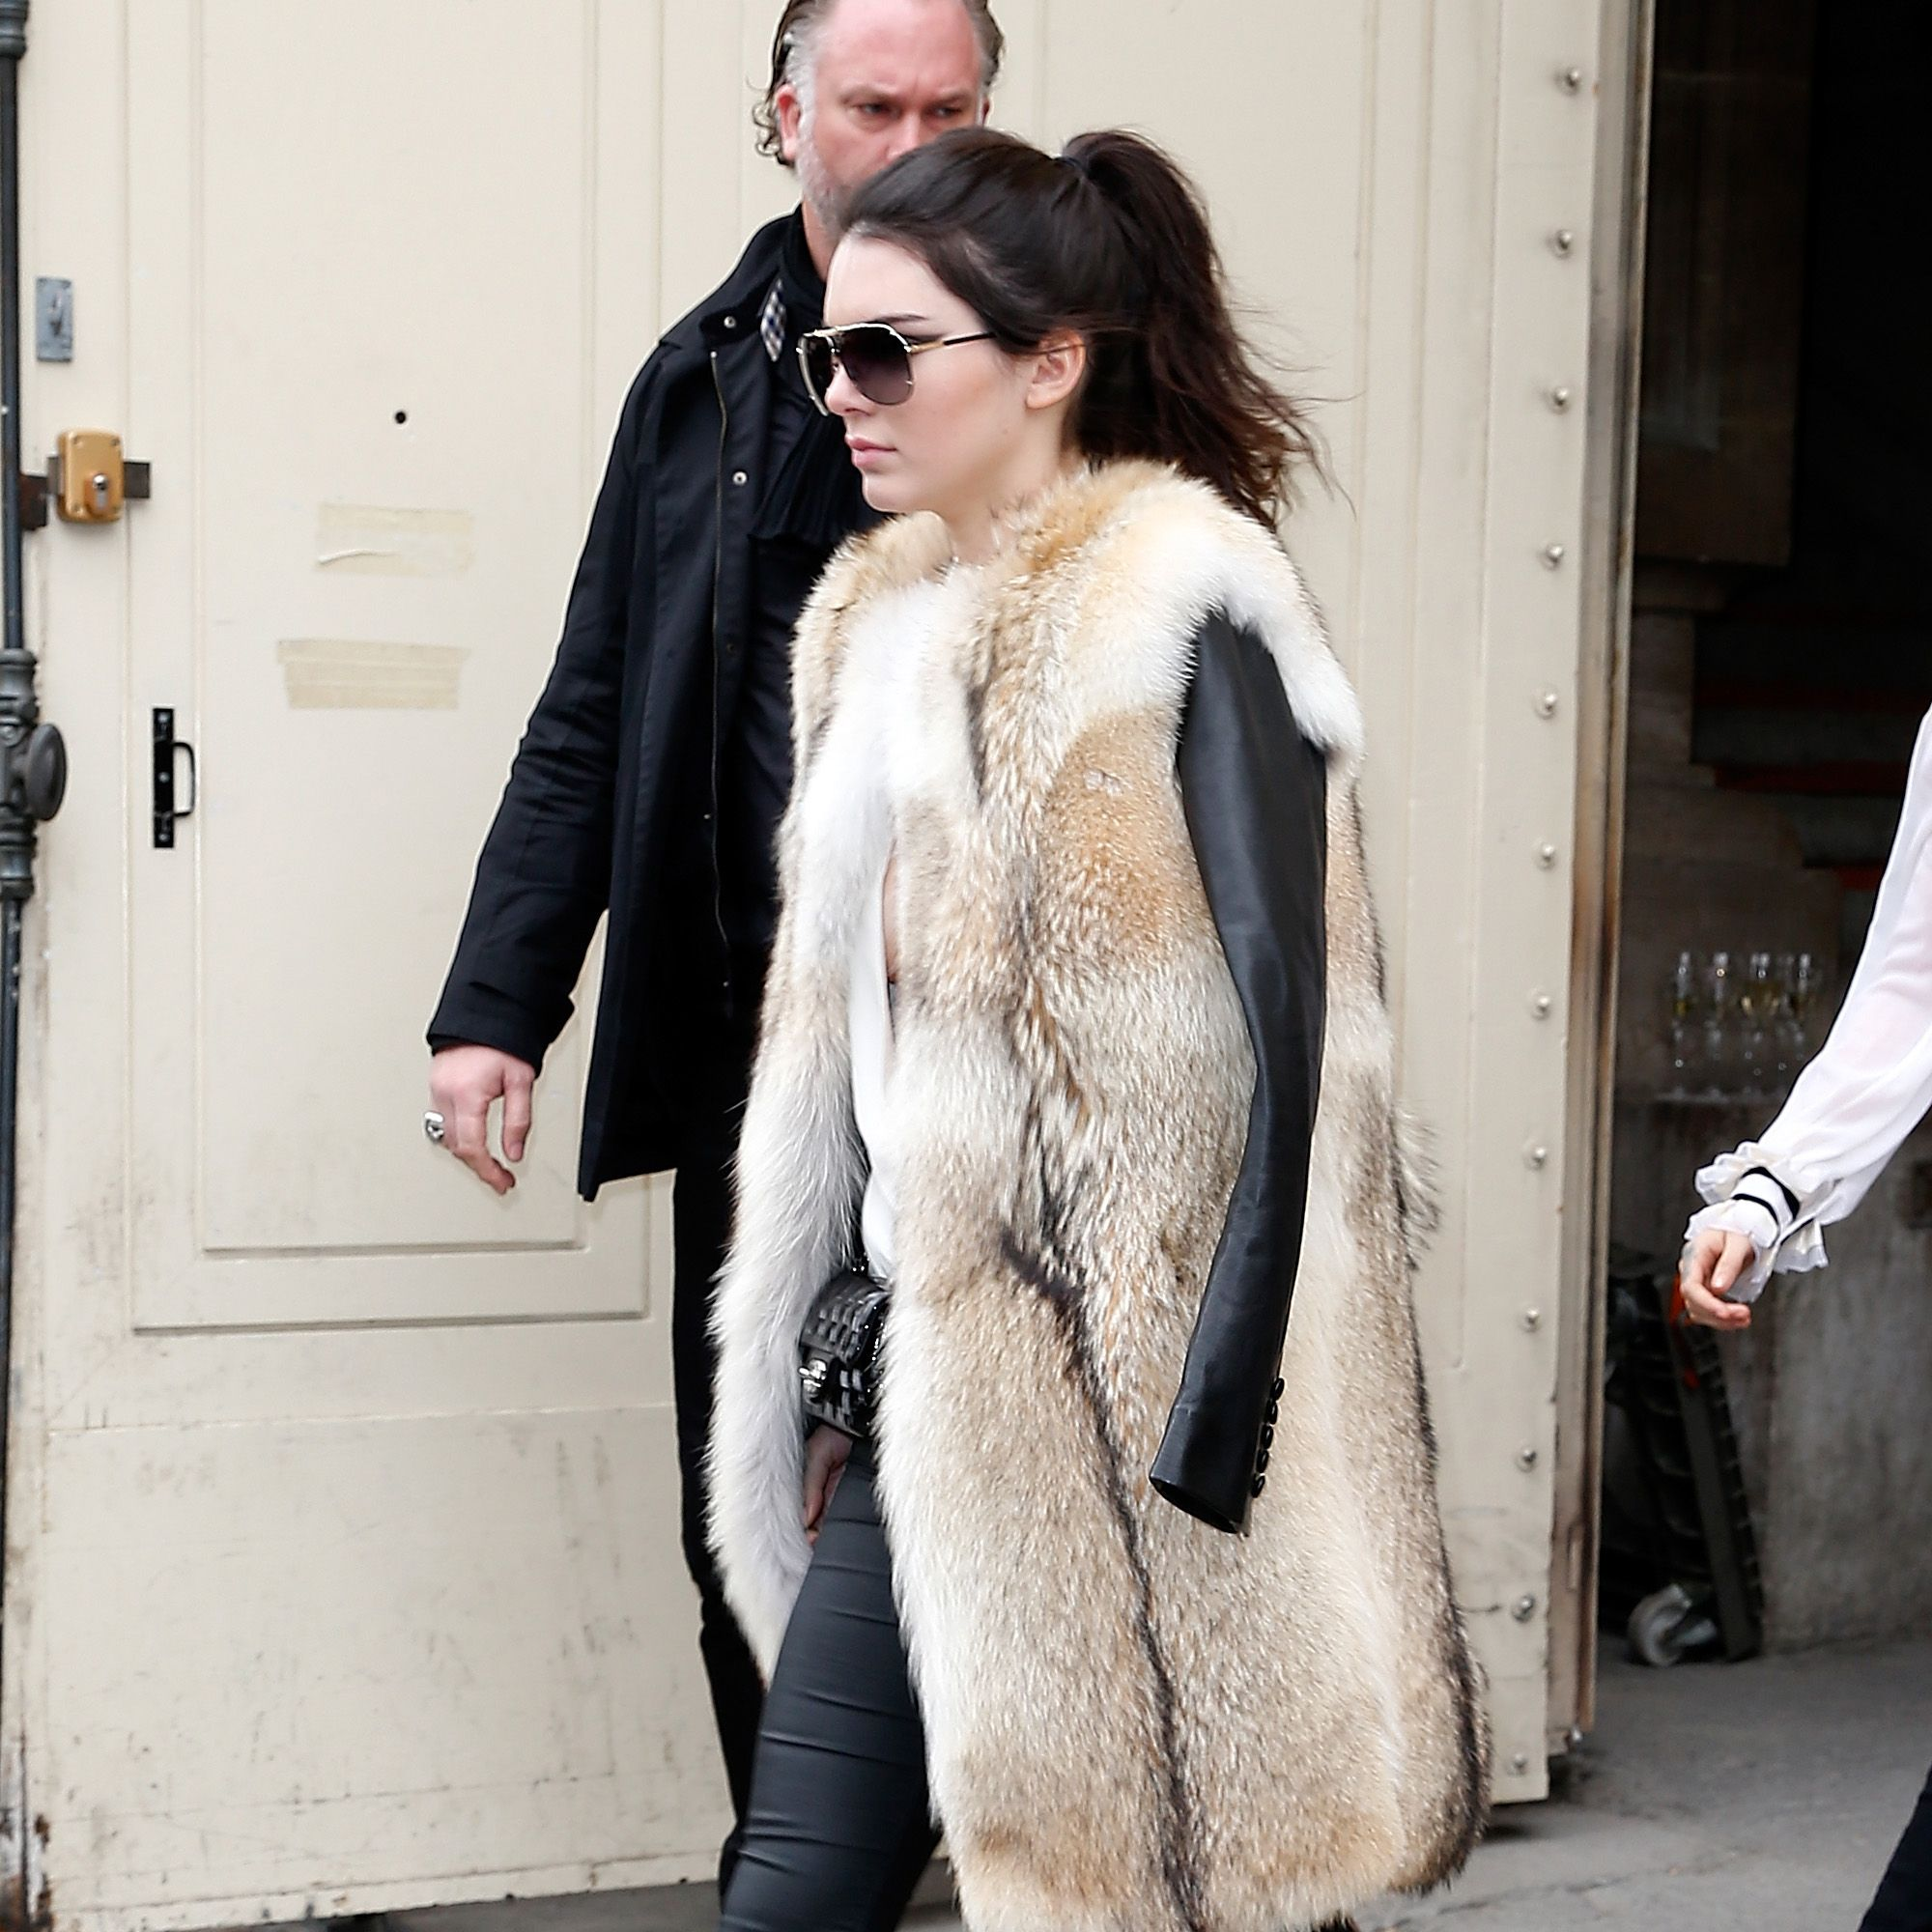 PARIS, FRANCE - MARCH 10:  Kendall Jenner attends the Chanel show as part of the Paris Fashion Week Womenswear Fall/Winter 2015/2016  on March 10, 2015 in Paris, France.  (Photo by Pierre Suu/Getty Images for Chanel)